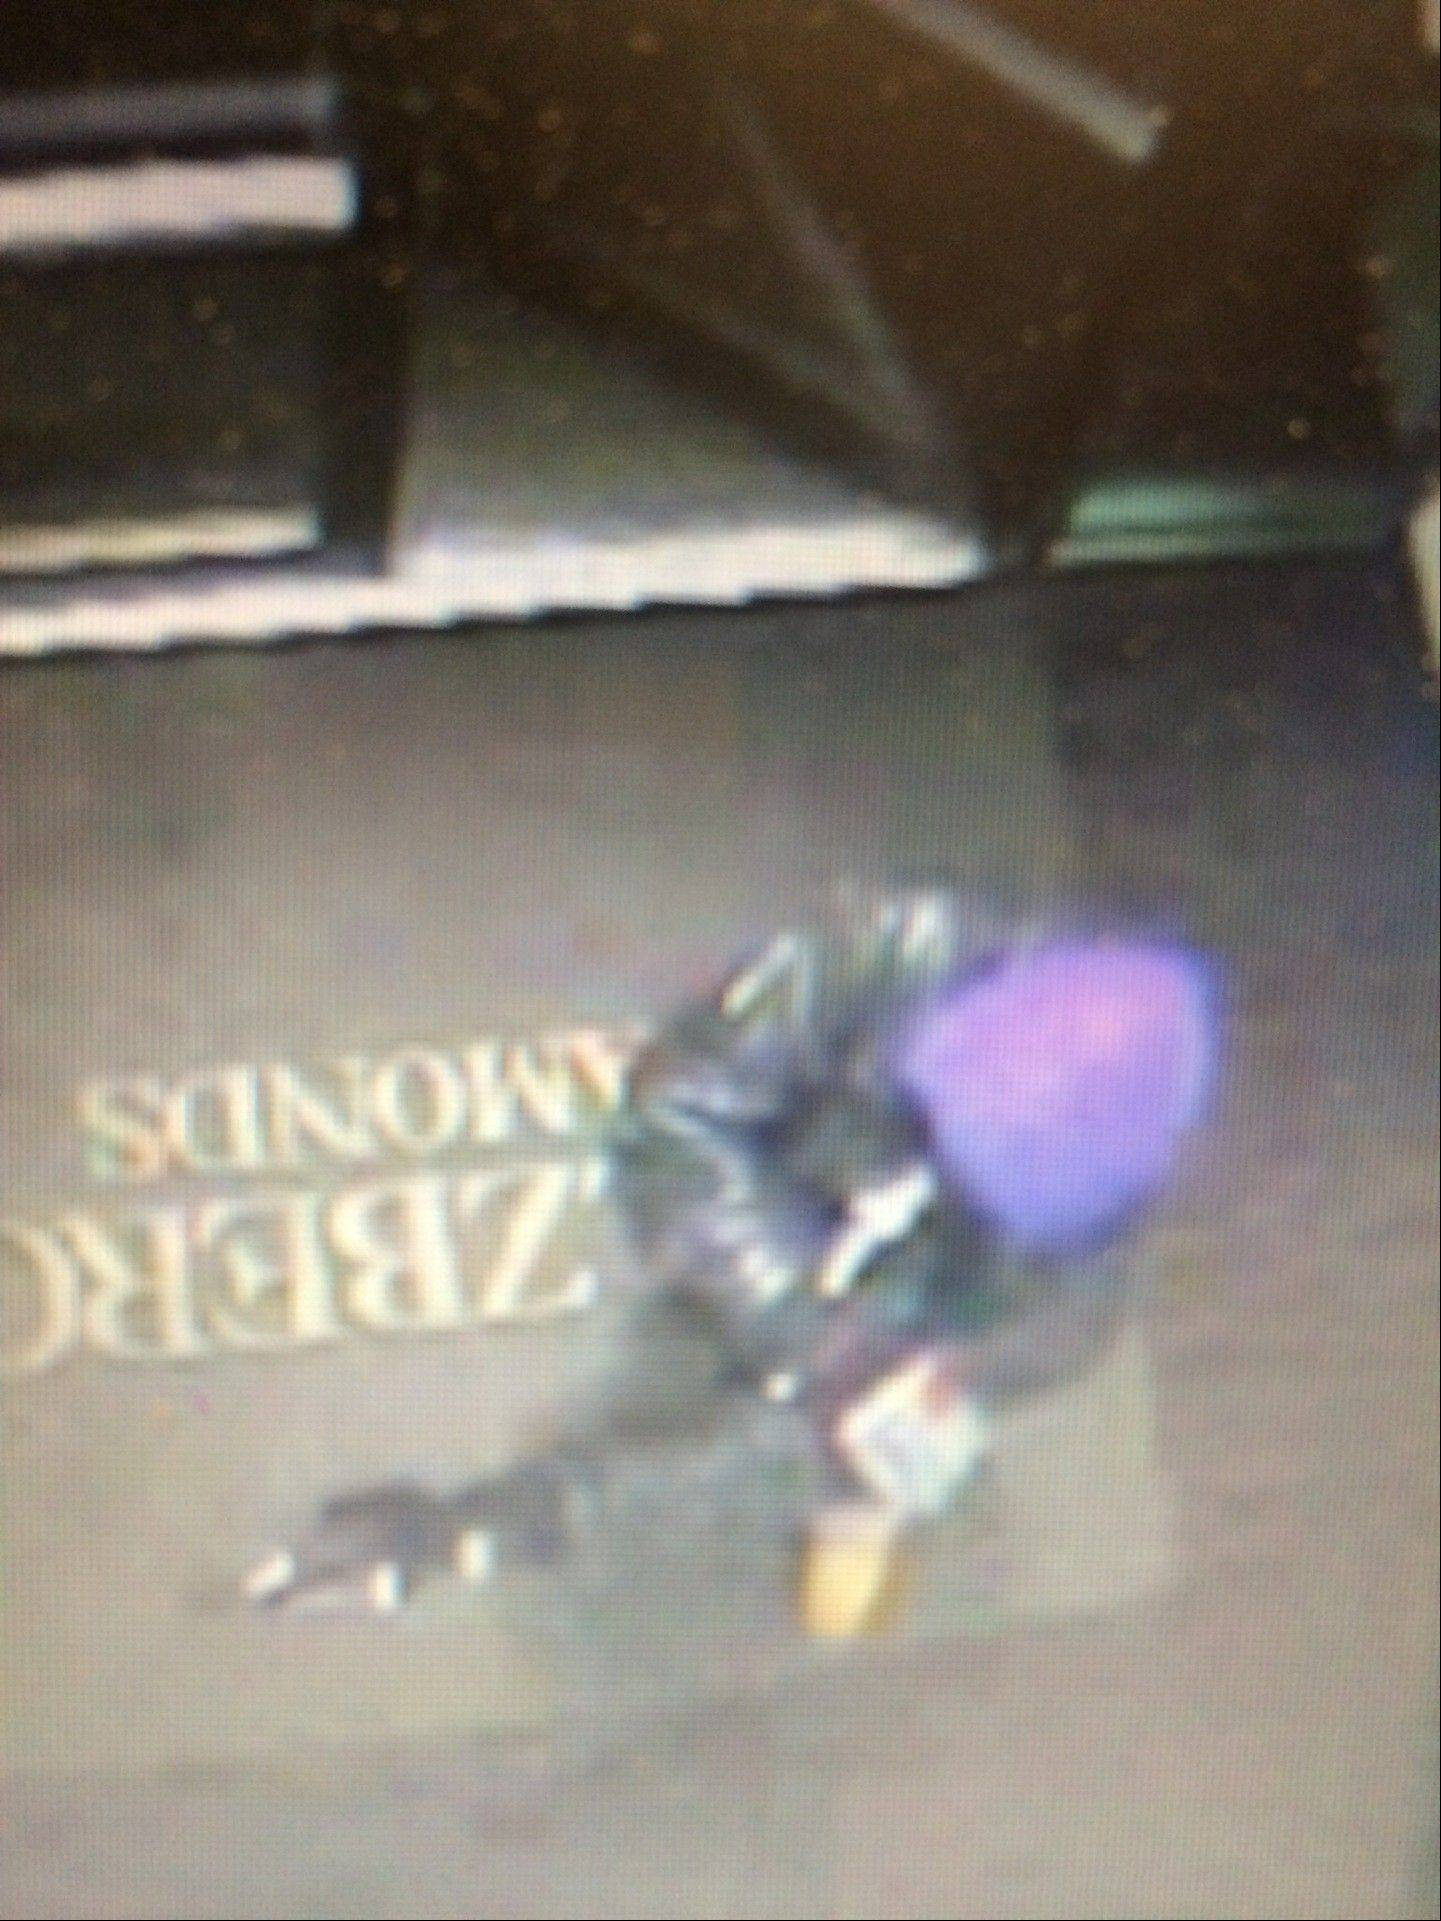 Police are seeking two suspects after an armed robbery occurred Saturday evening at Helzberg Diamonds in Oak Brook.